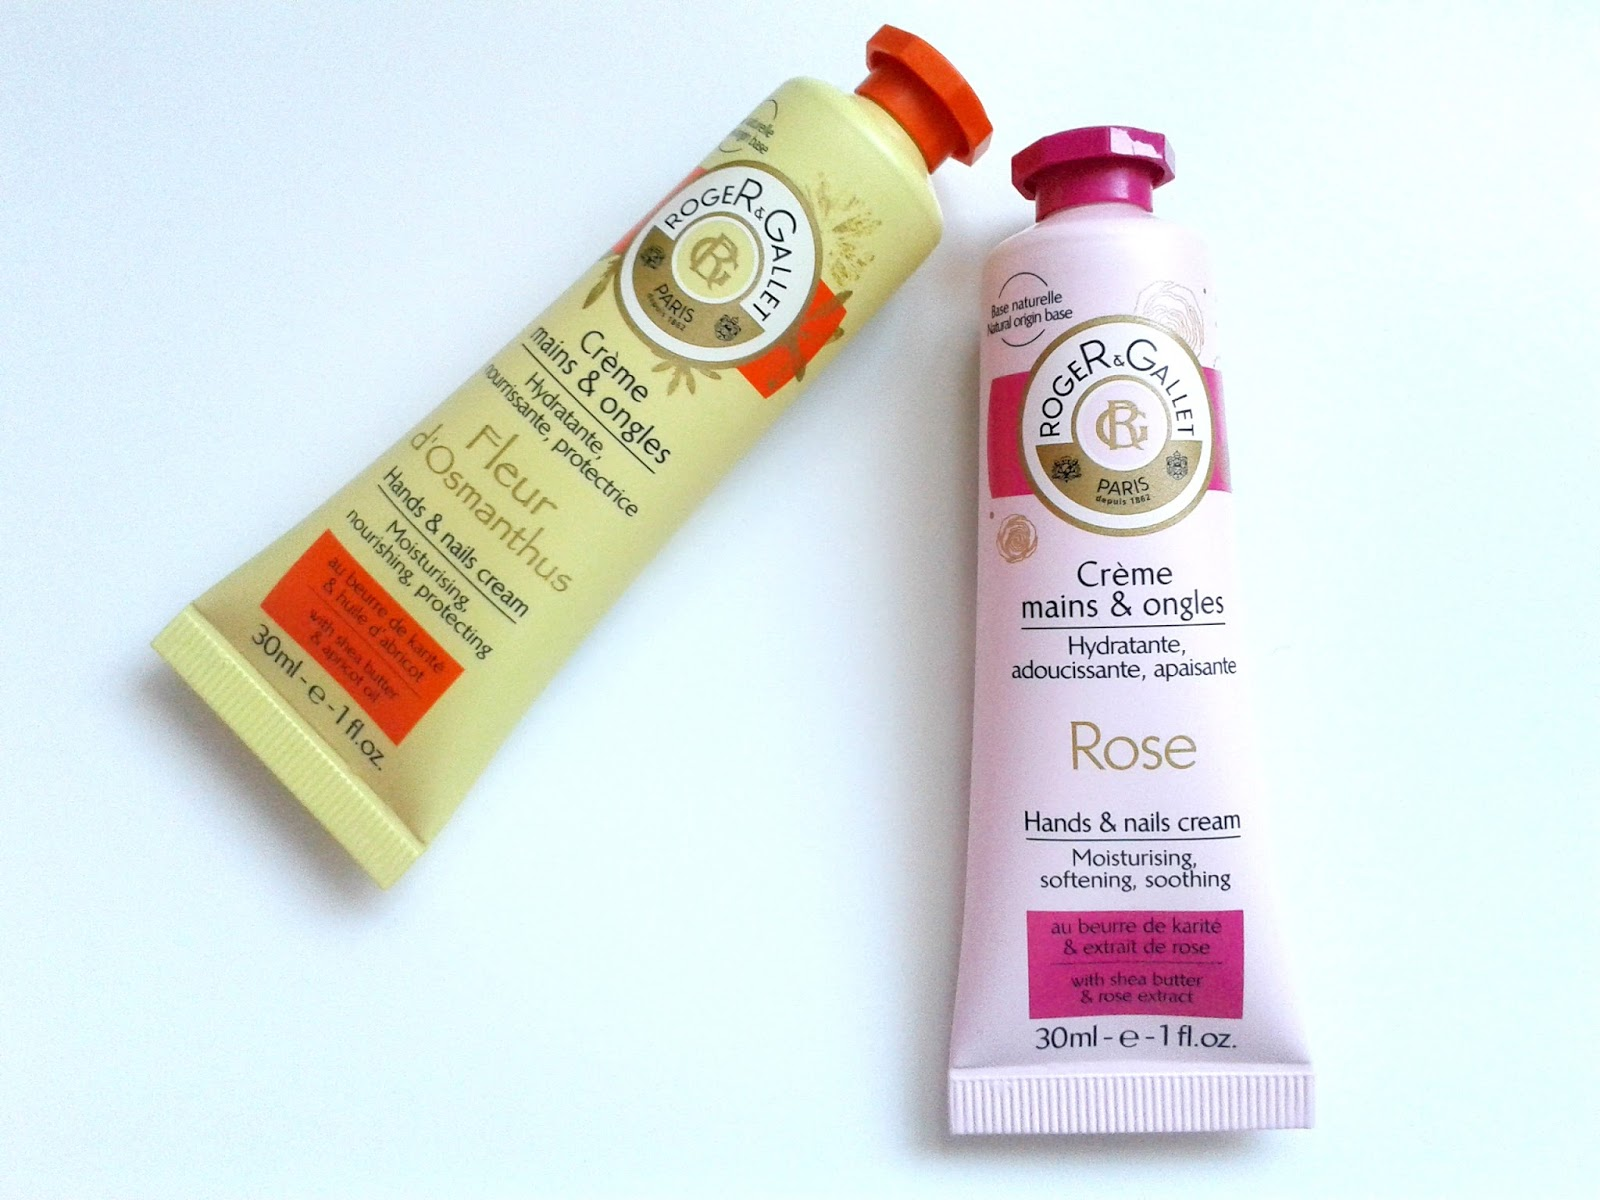 Roger & Gallet Hand & Nails Creams (in Rose and Fleur d'Osmanthus) Review Get Ready for summer: body Ellis Tuesday's Summer Sun-days: Body